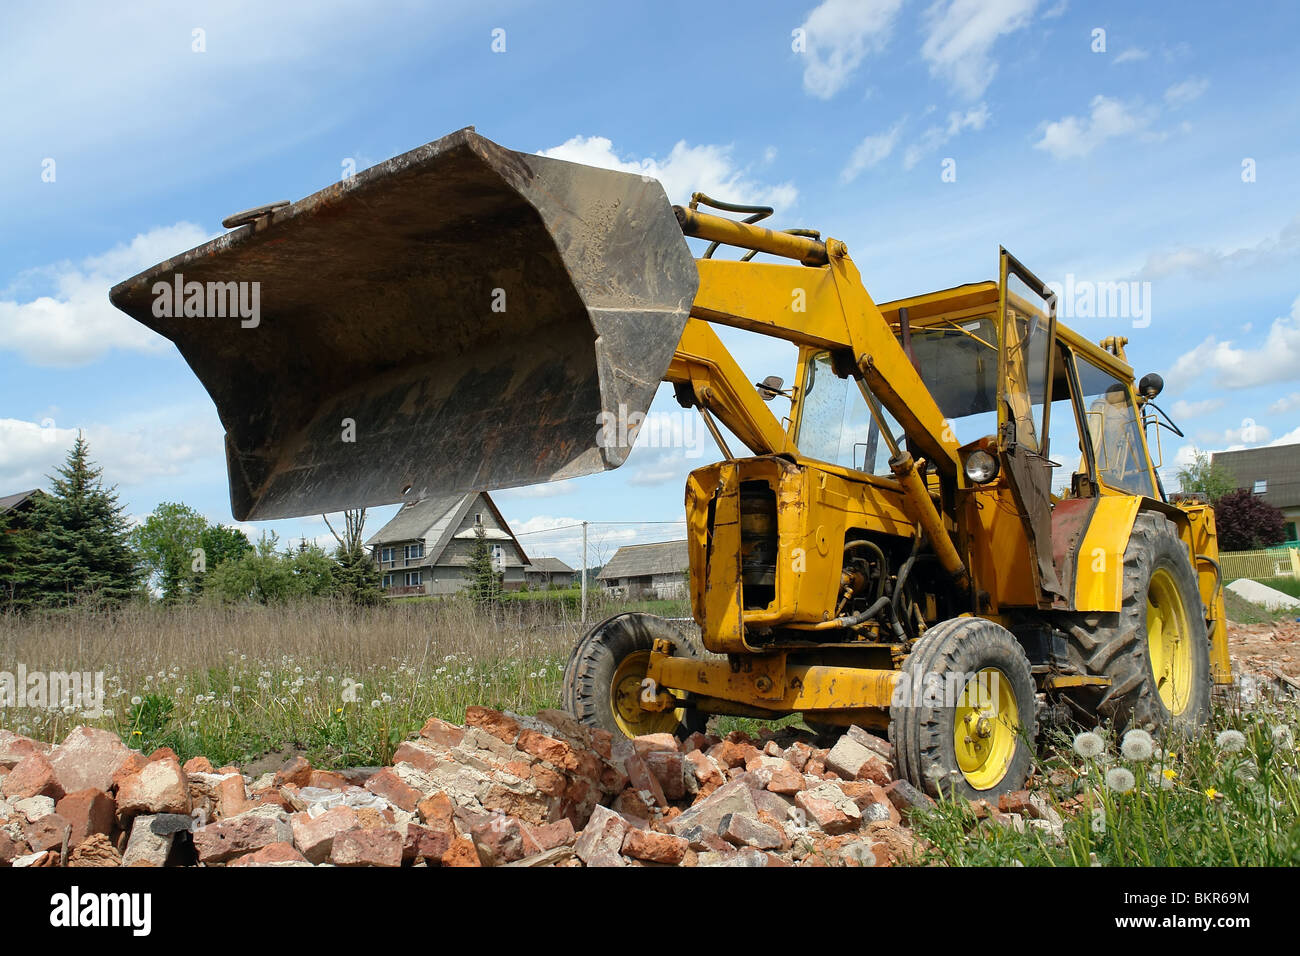 Yellow backhoe loader working with brick debris - Stock Image